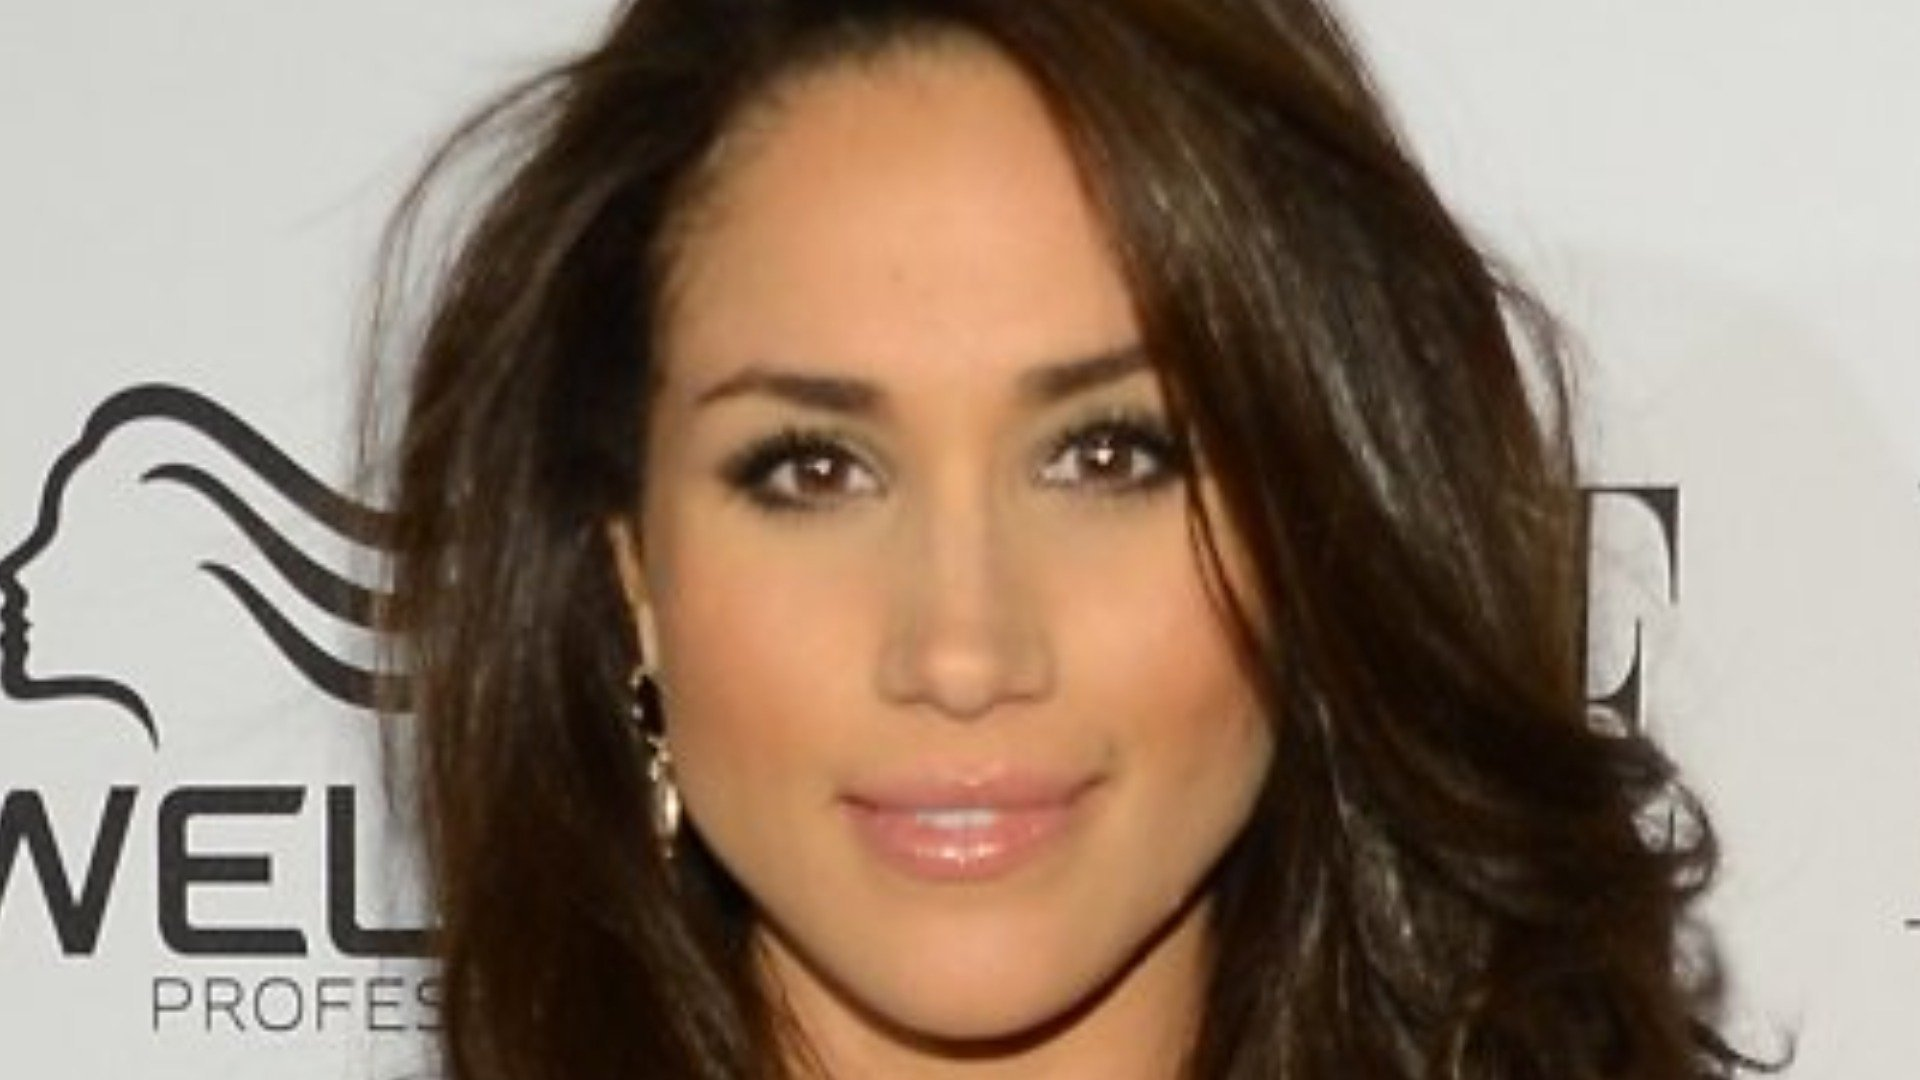 Pretty Sketchy Things We Just Ignore About Meghan Markle